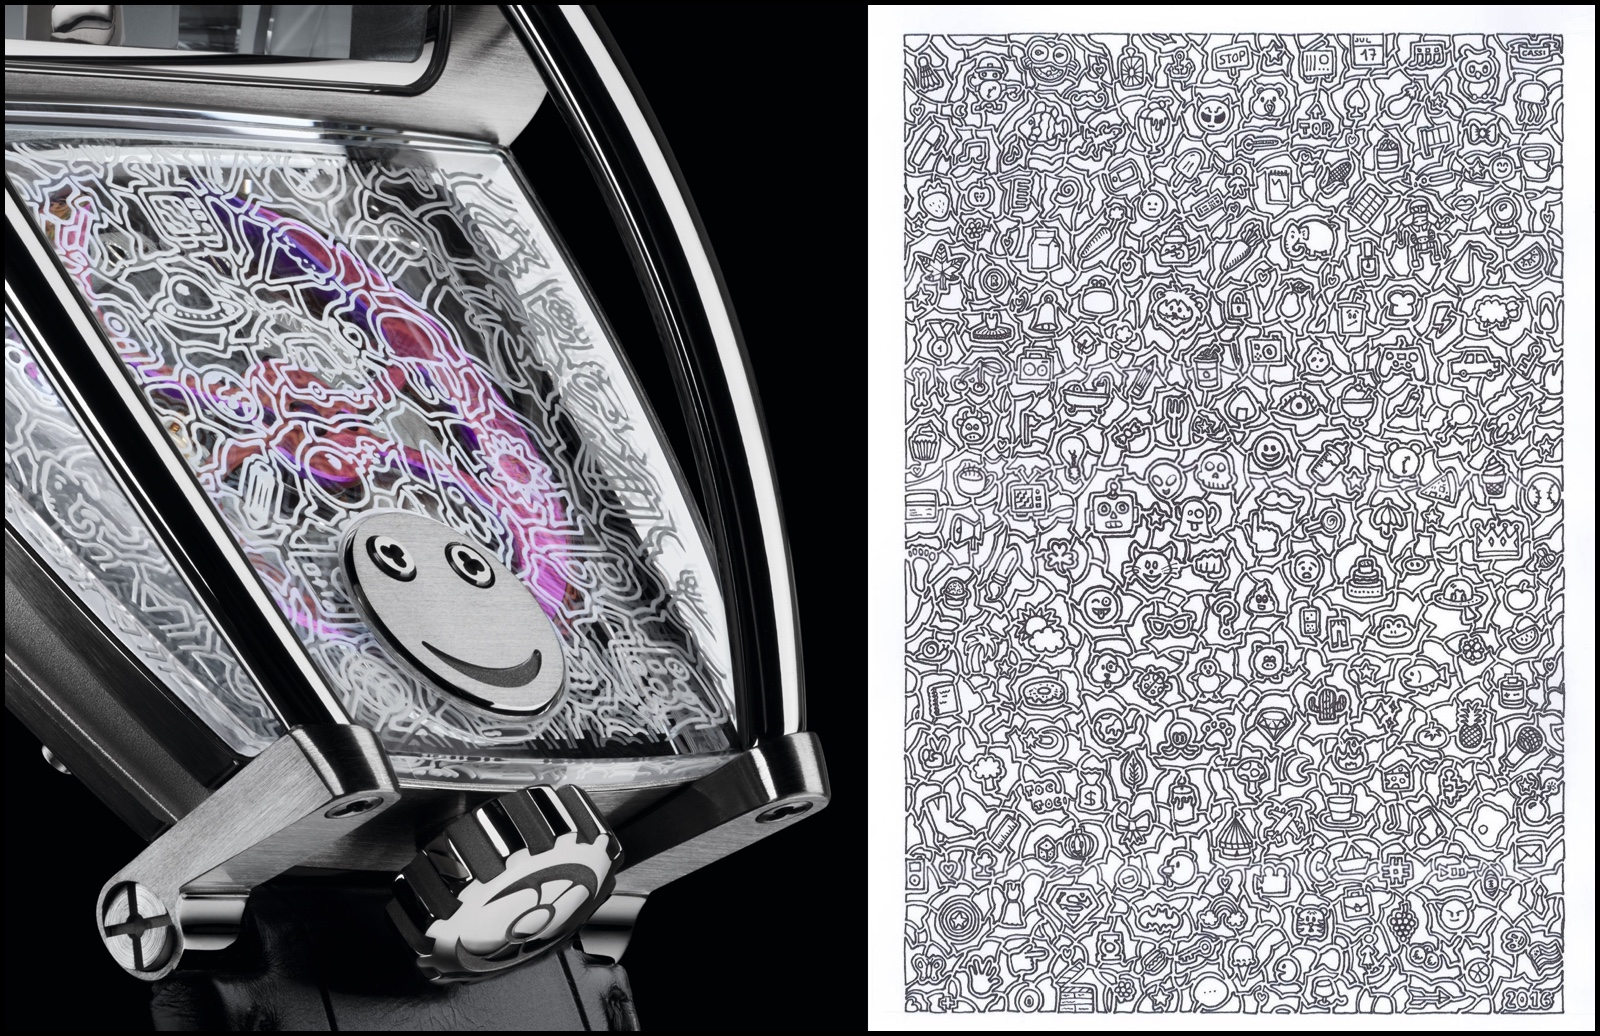 MBF Horological Machine N8 Only Watch Detail and Doodle